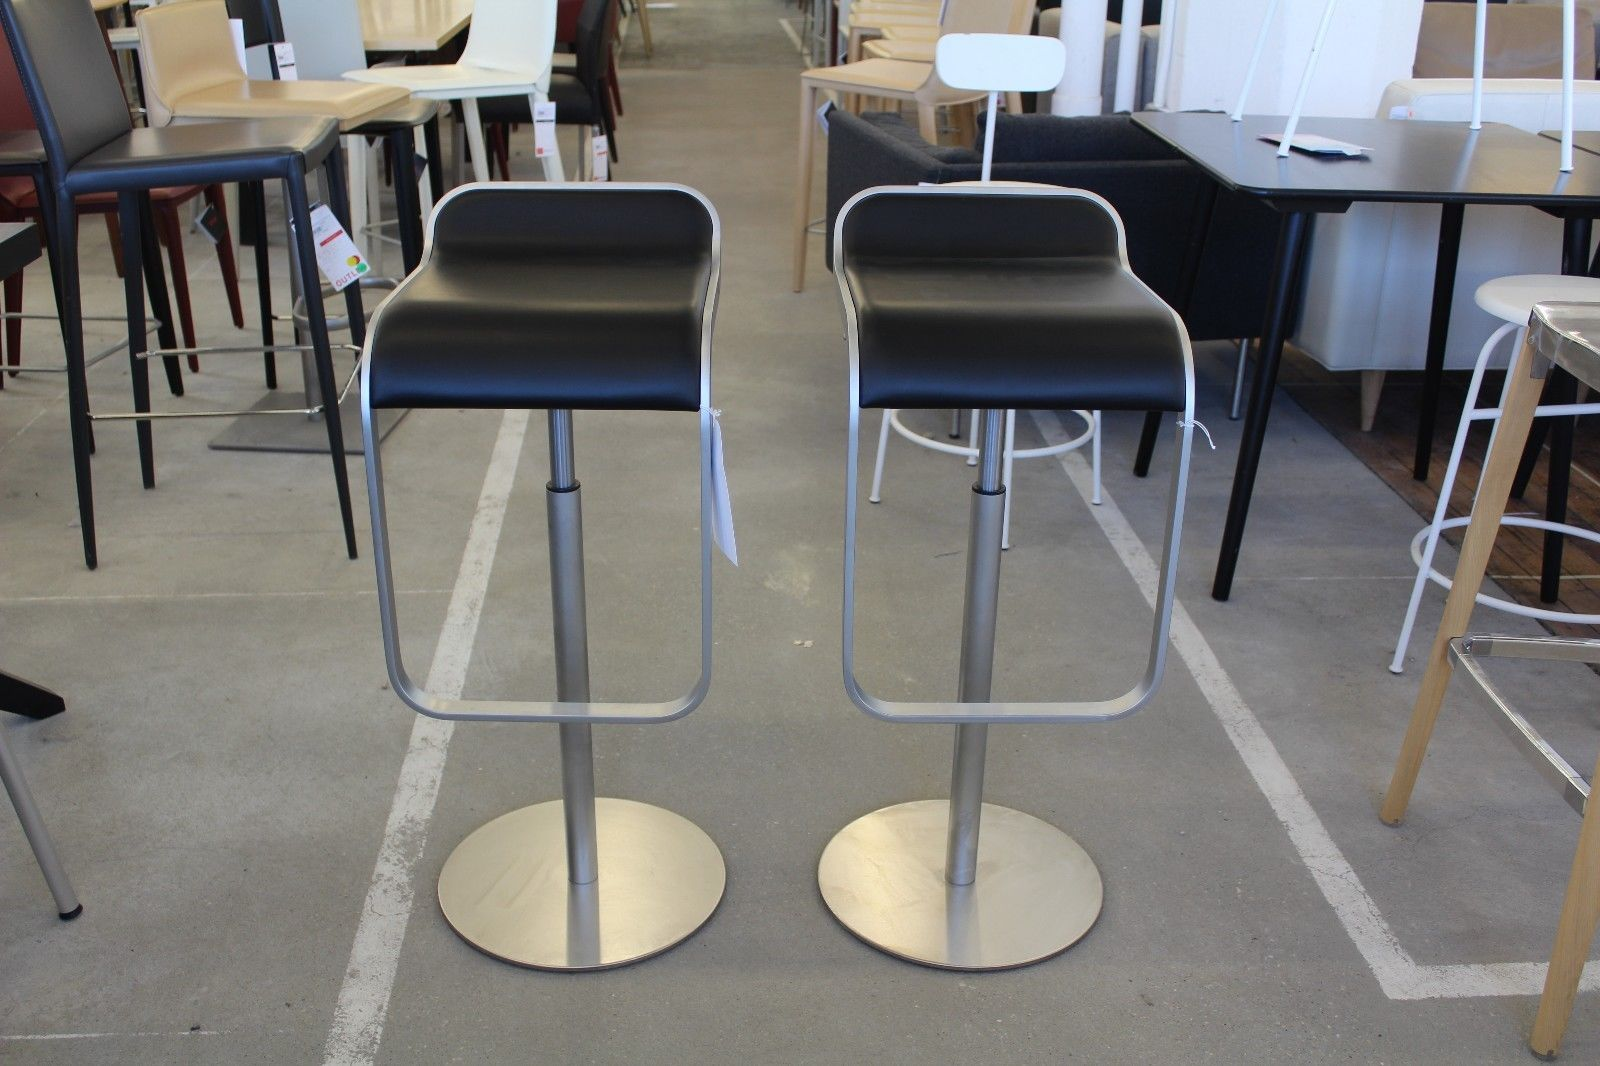 Lem Piston Stool With Leather Seat Black Set Of 2 Modern Dwr Design Within Reach